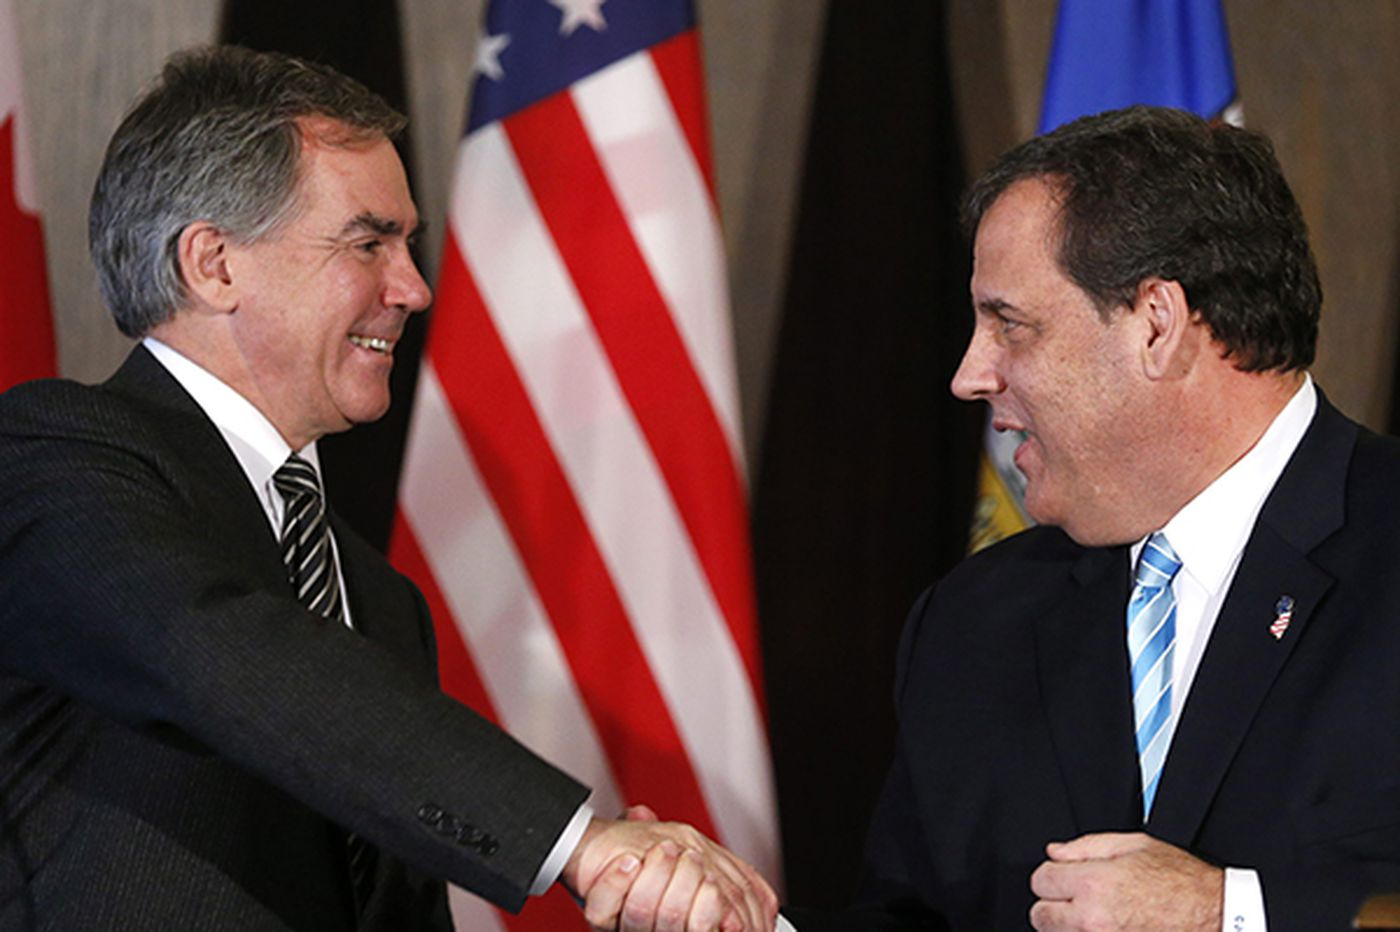 Christie encourages closer ties to Canada